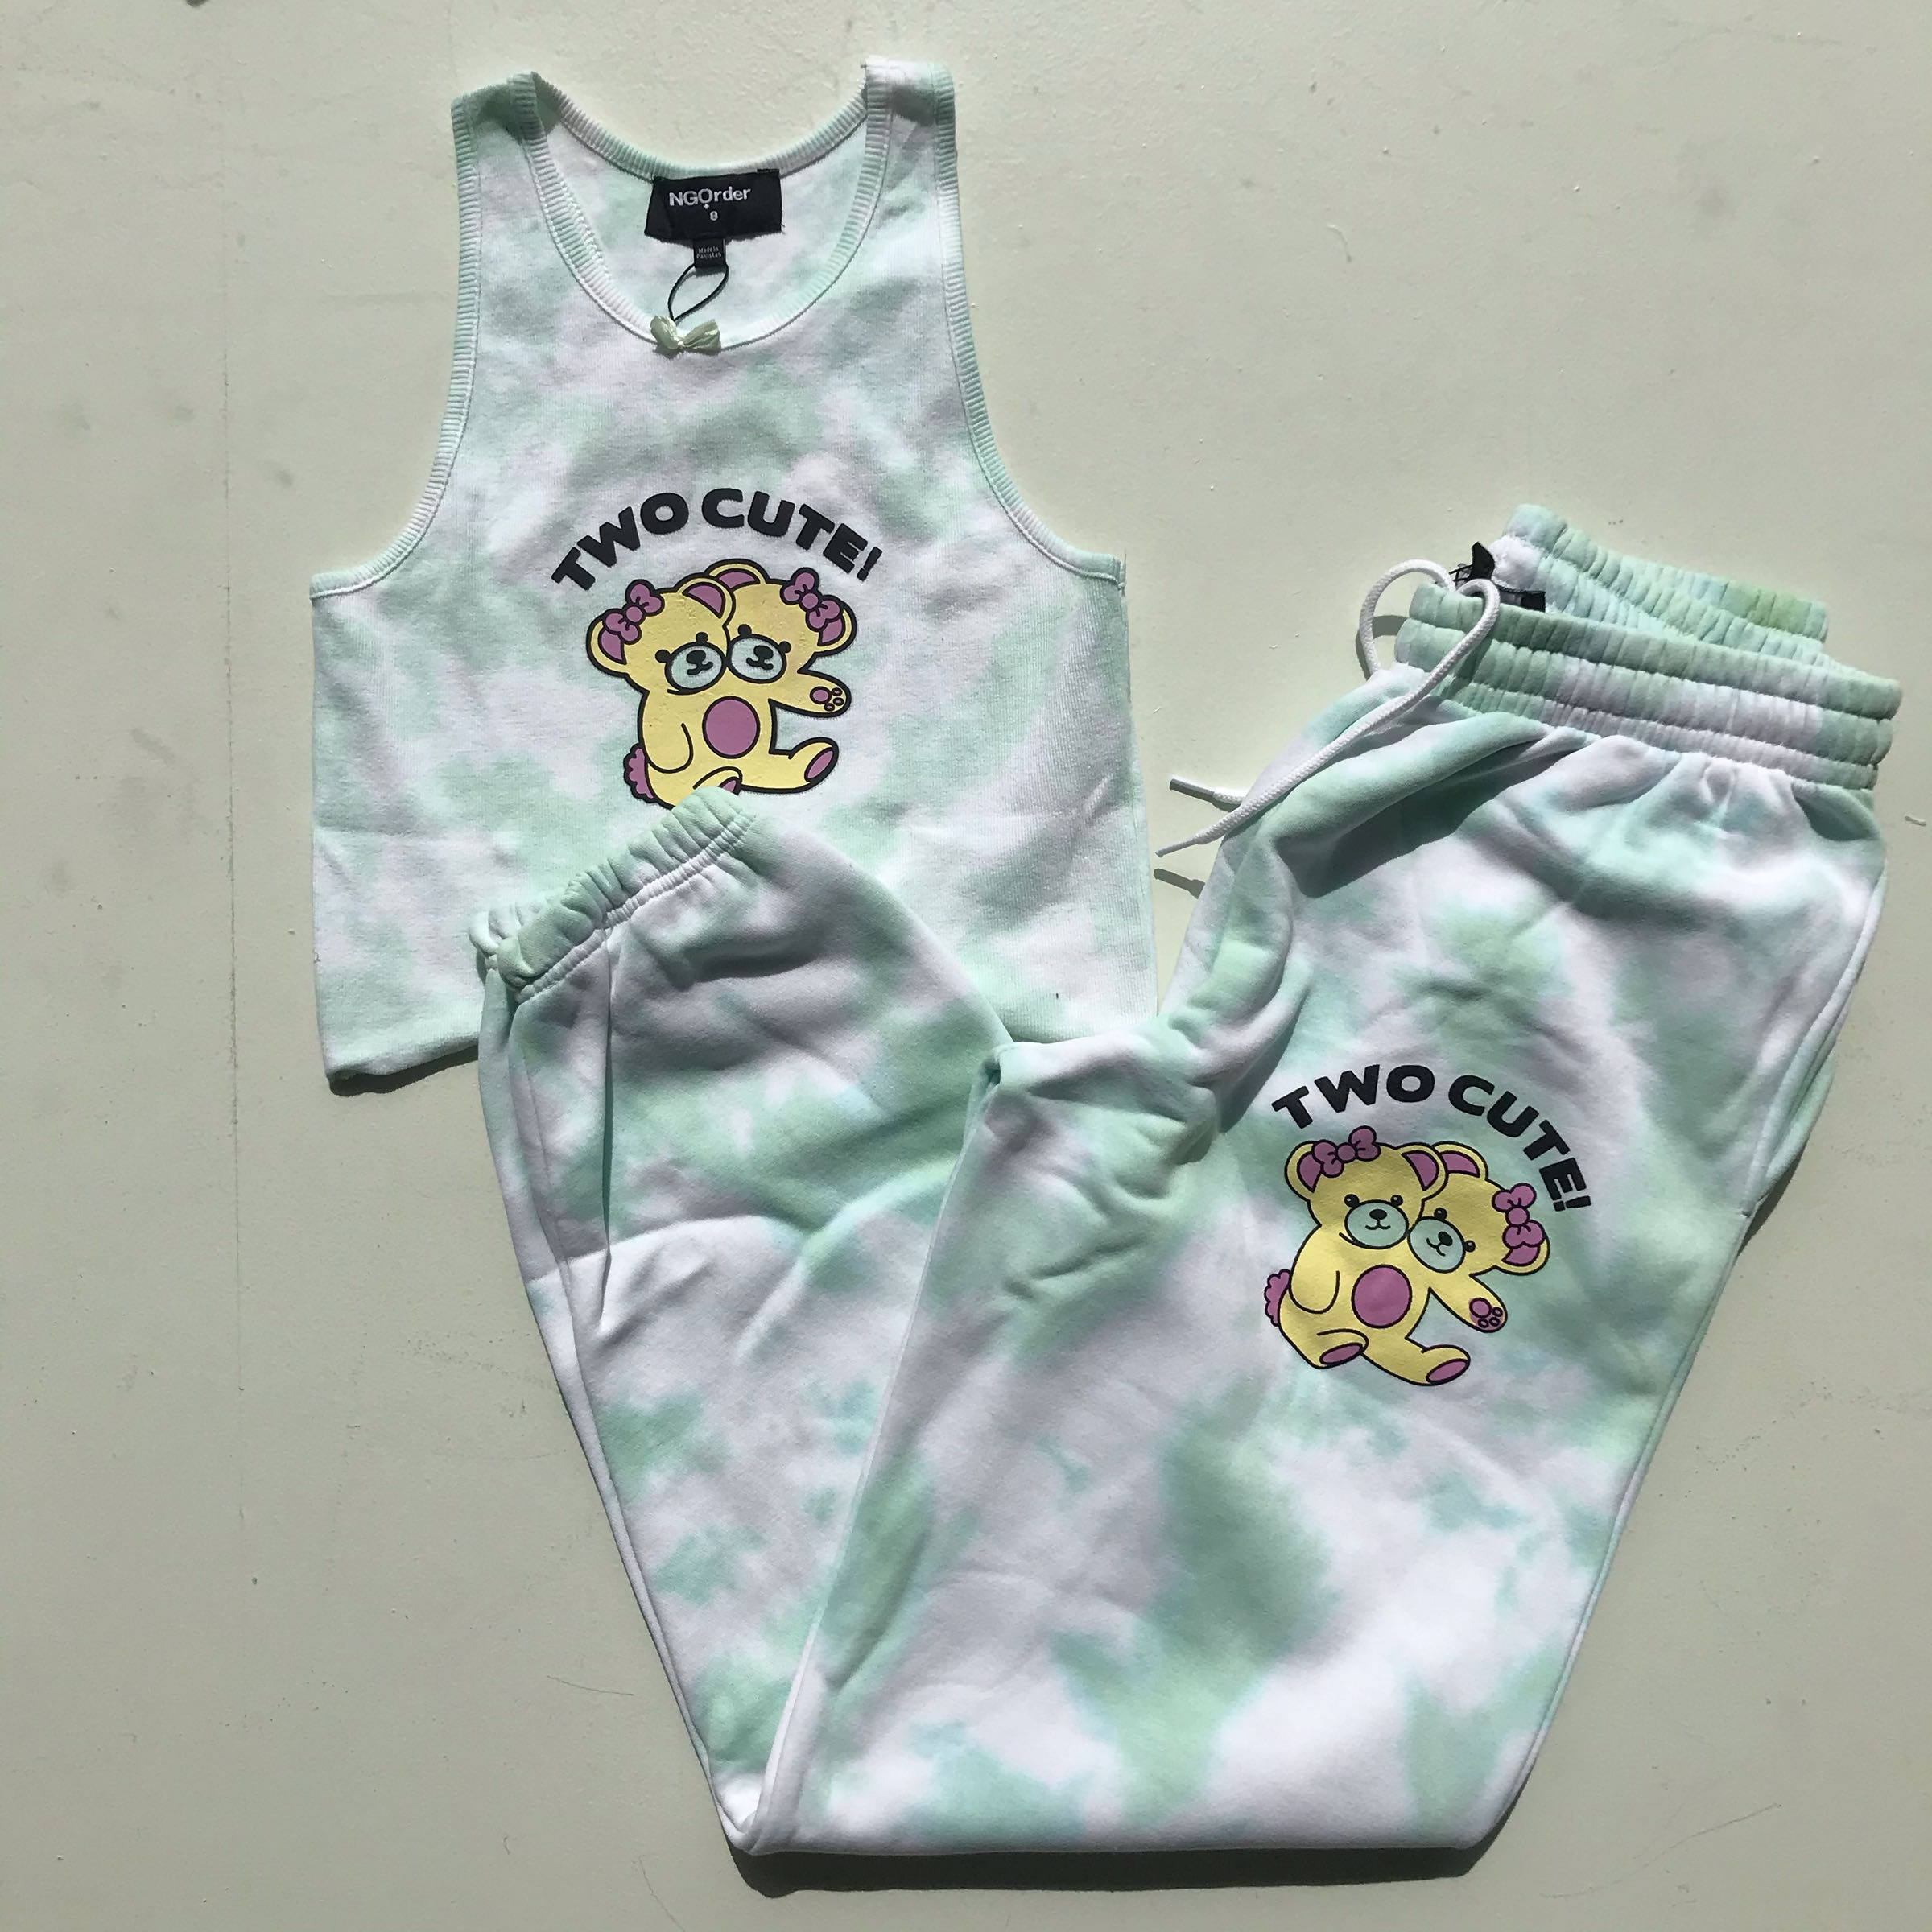 New Girl Order Two Cute Jogger